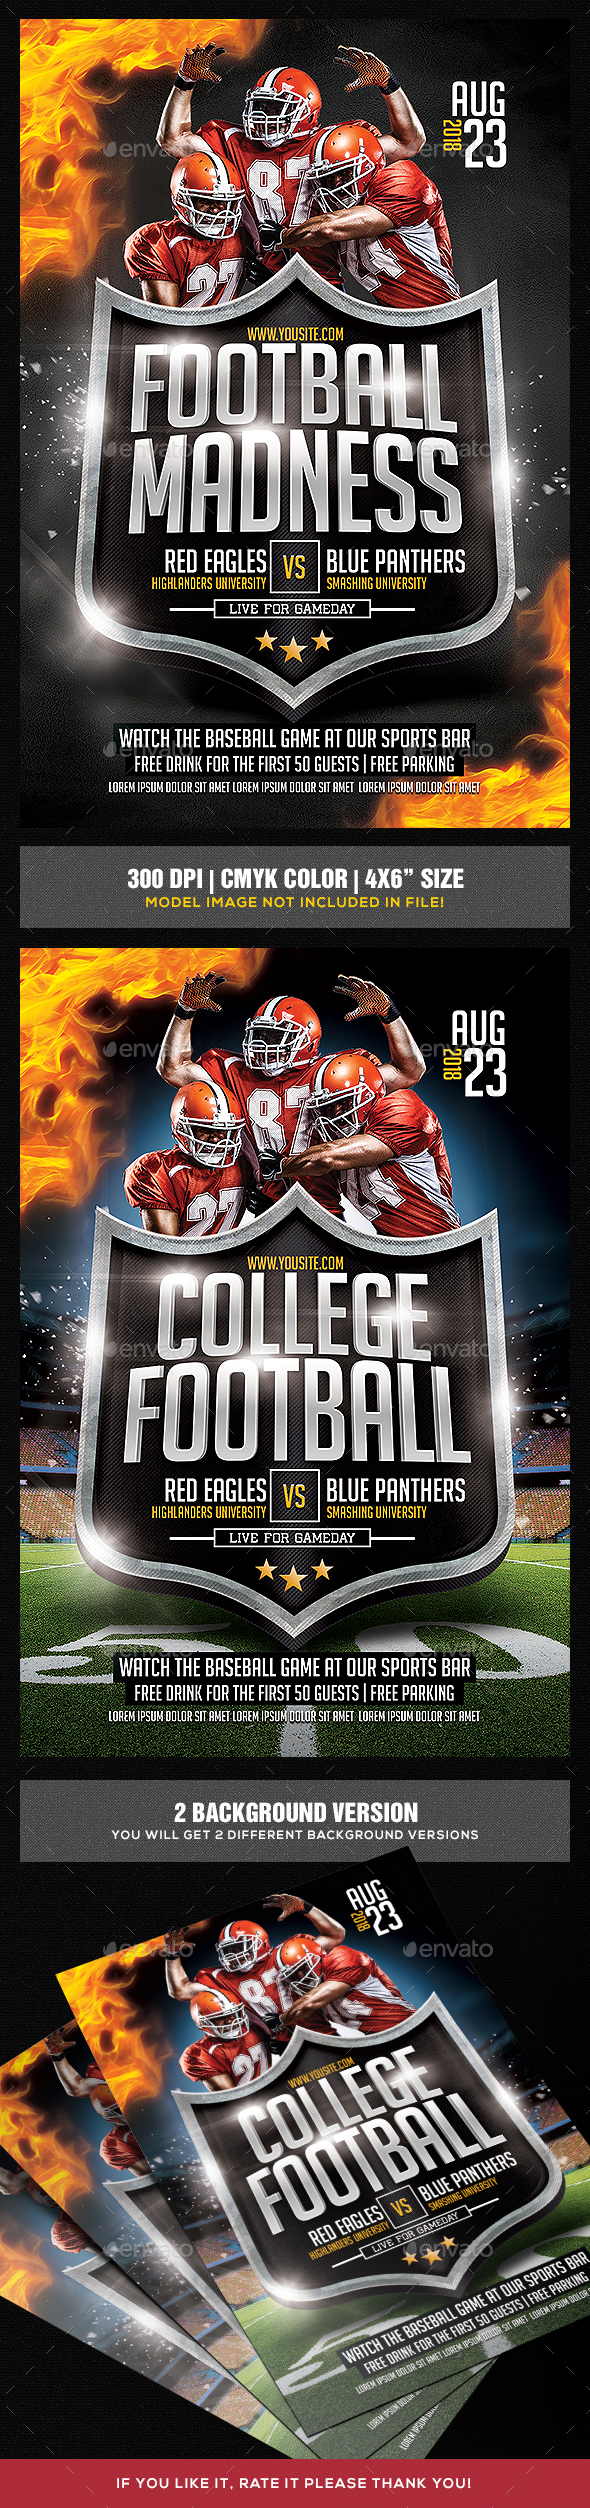 College Football Game Flyer - Sports Events